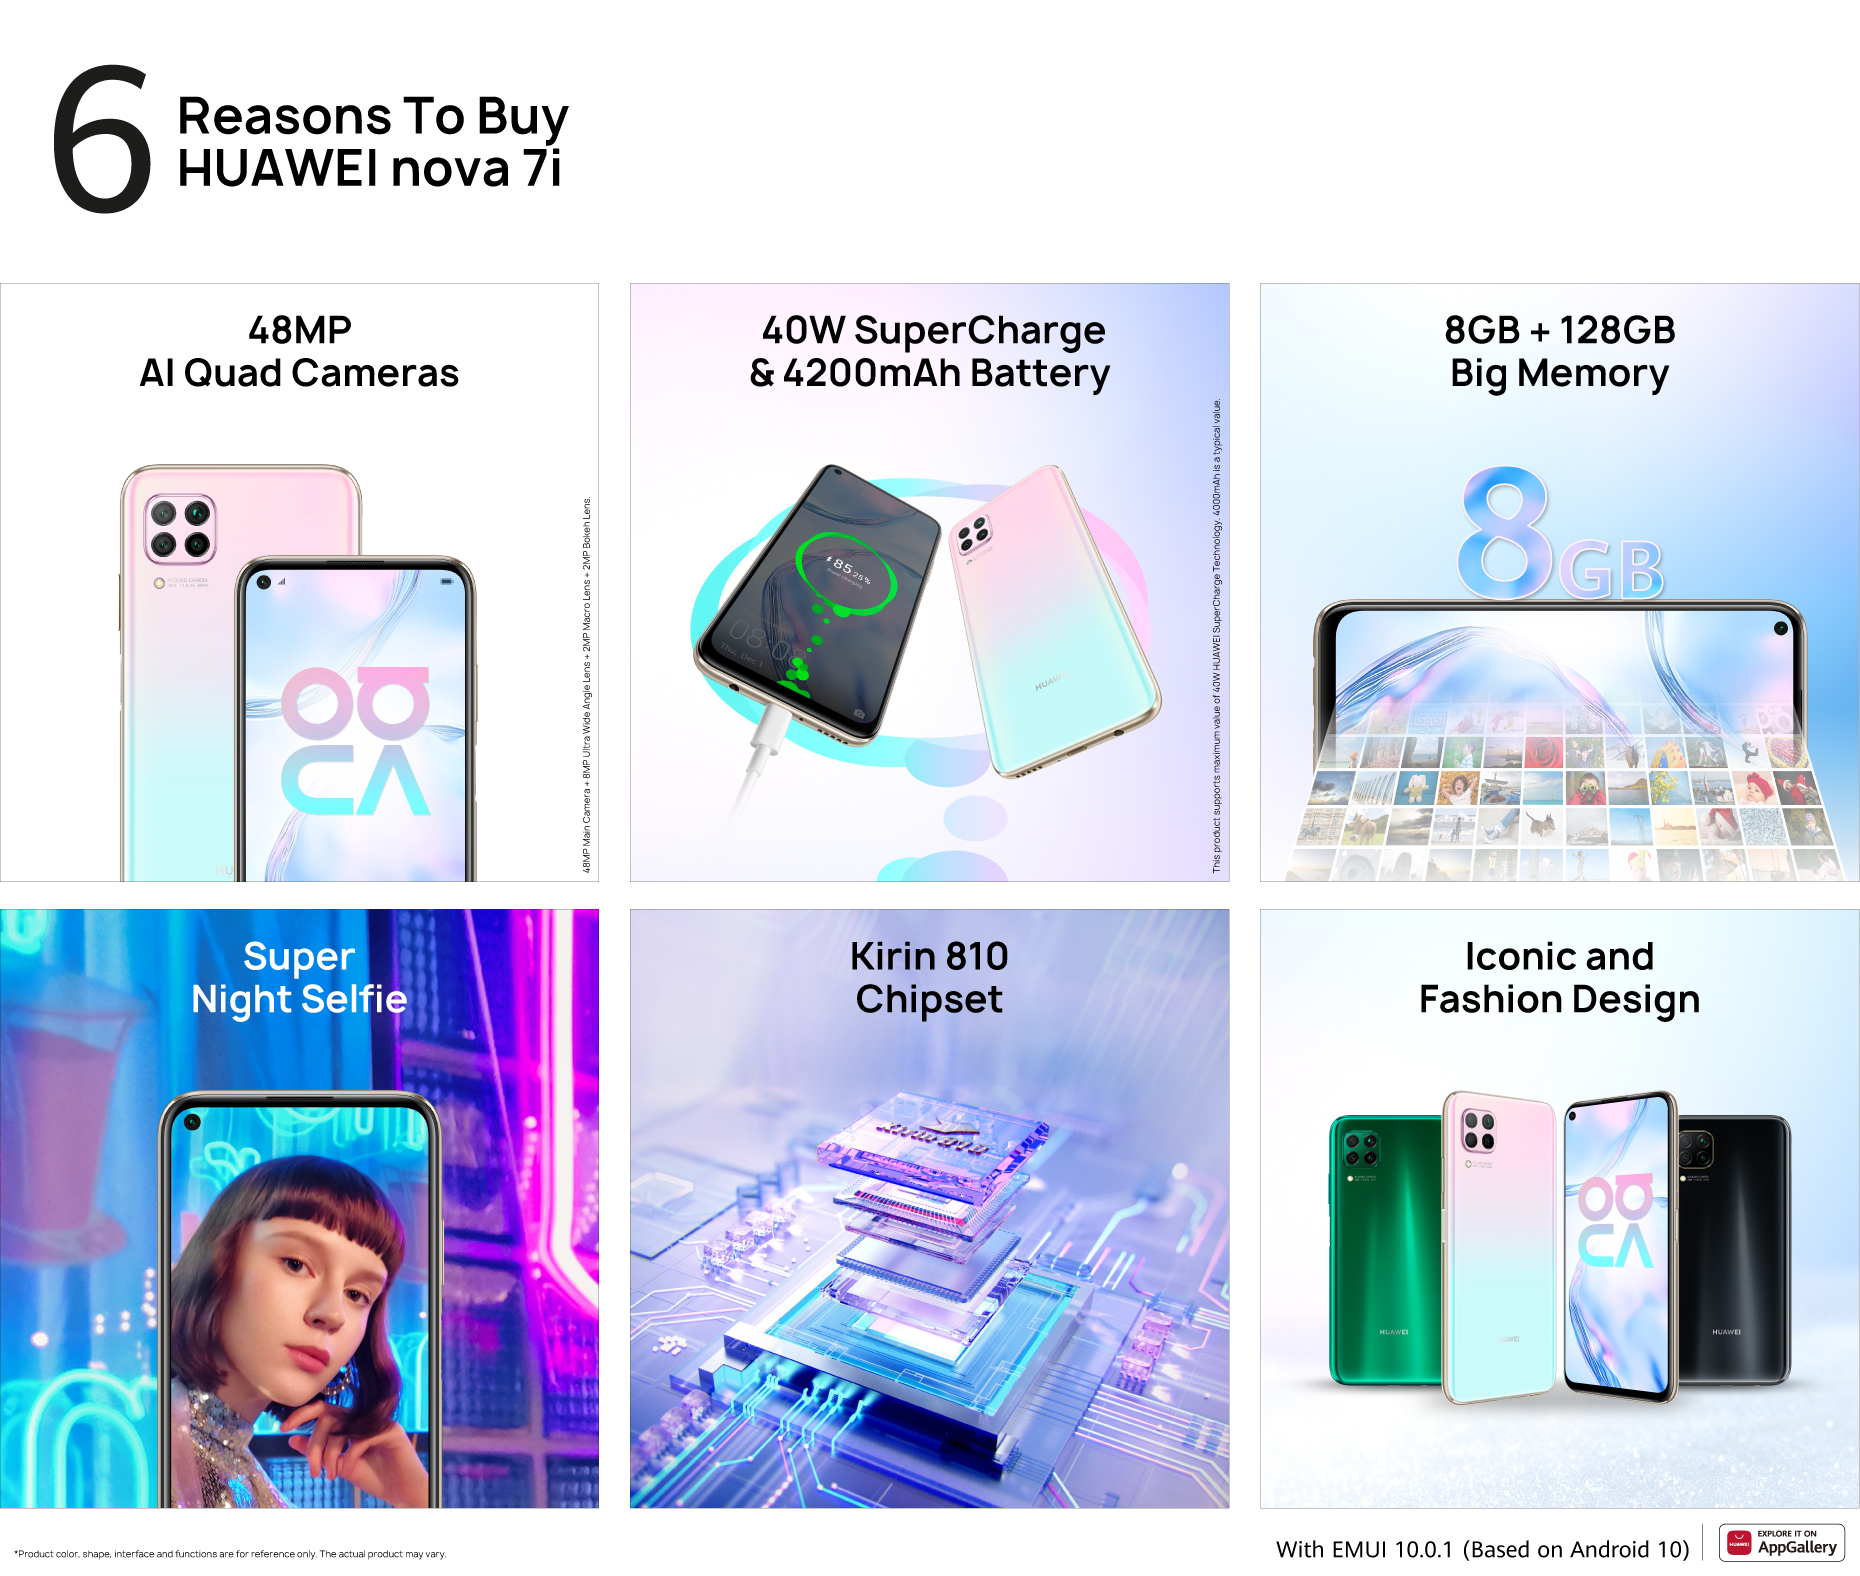 HUAWEI nova 7i Reasons To Buy